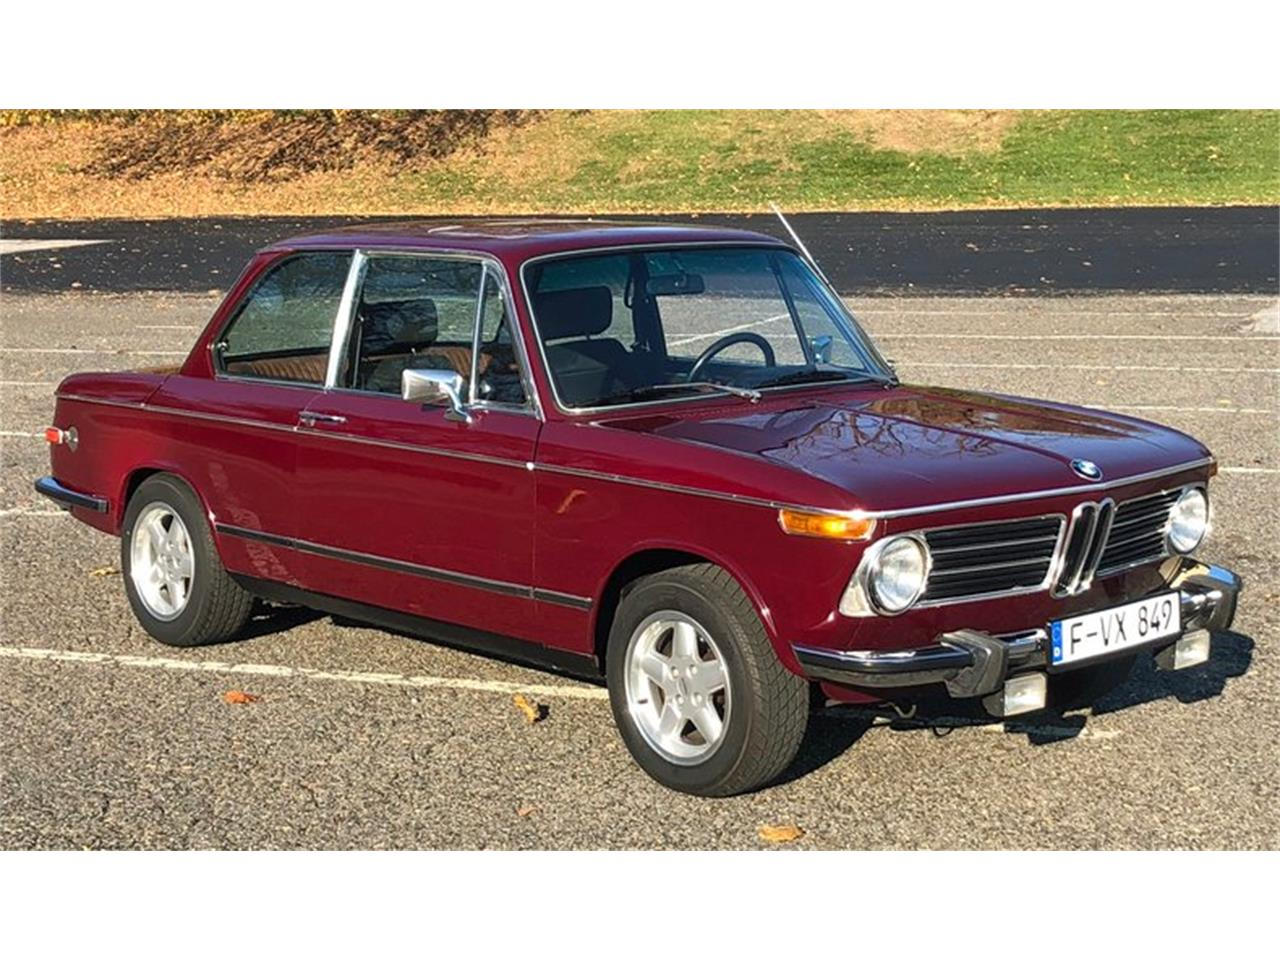 Bmw 2002 For Sale >> 1973 Bmw 2002 For Sale Classiccars Com Cc 1175001